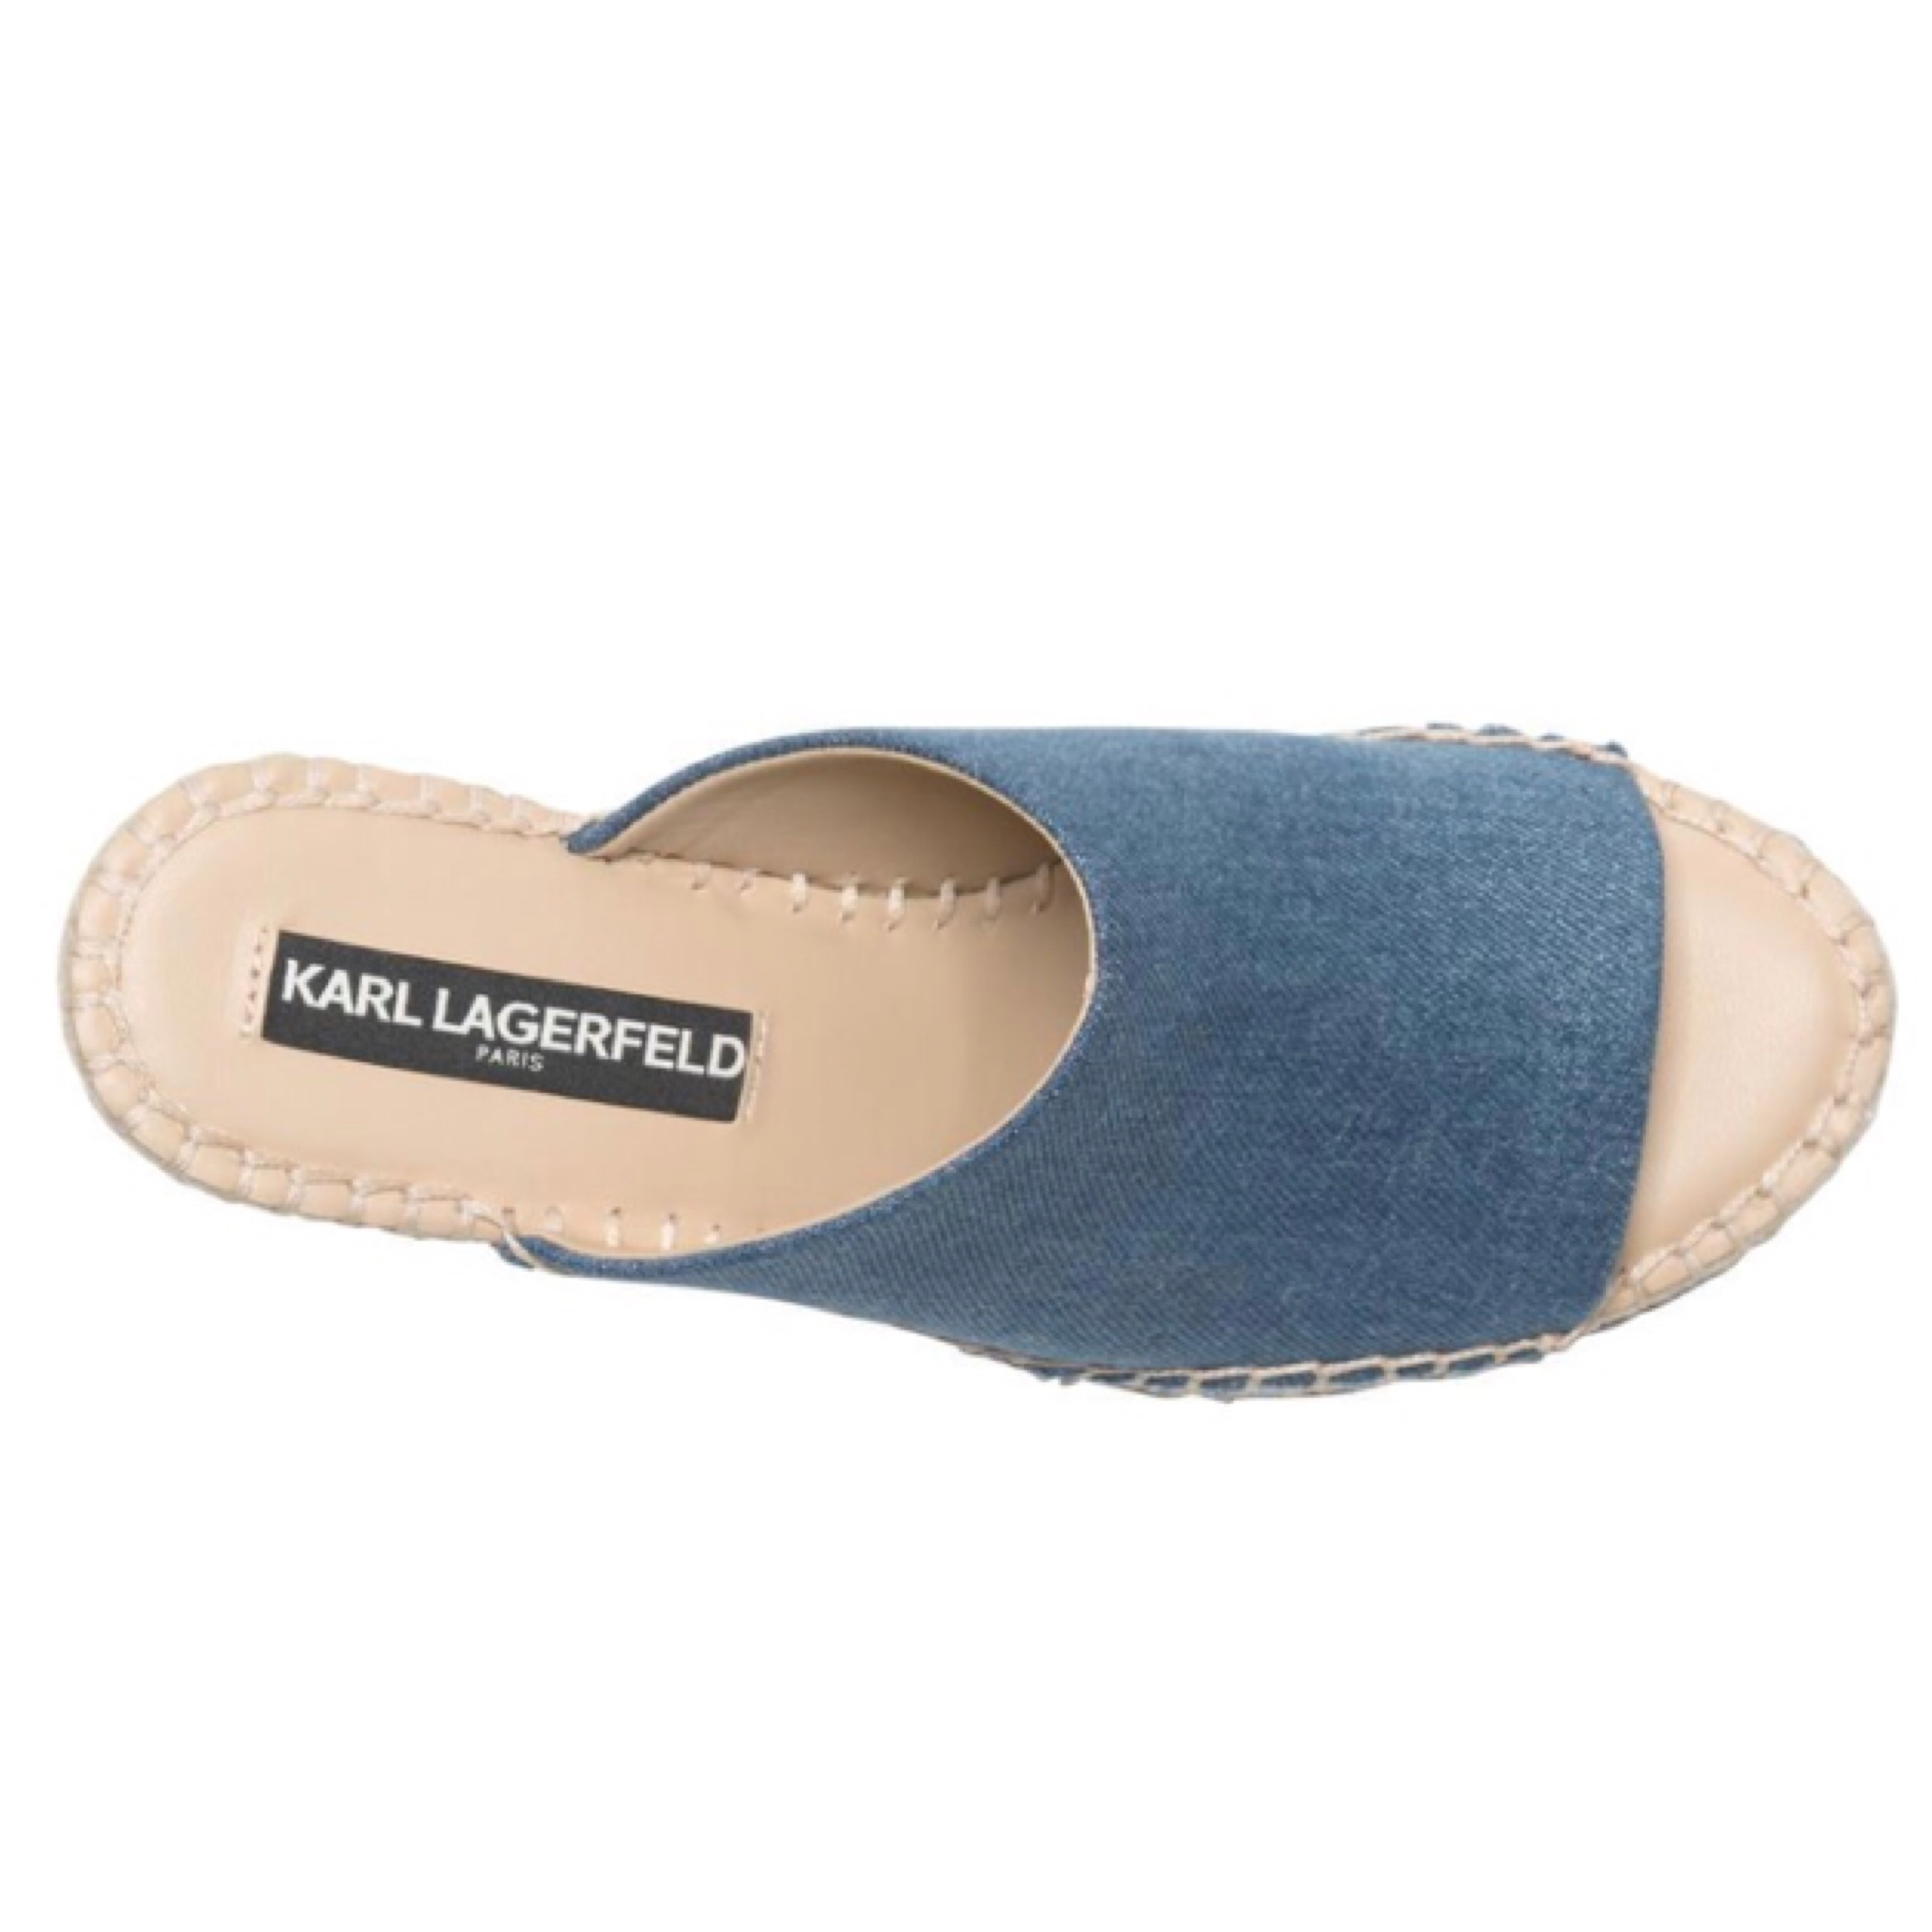 shop karl lagerfeld shoes